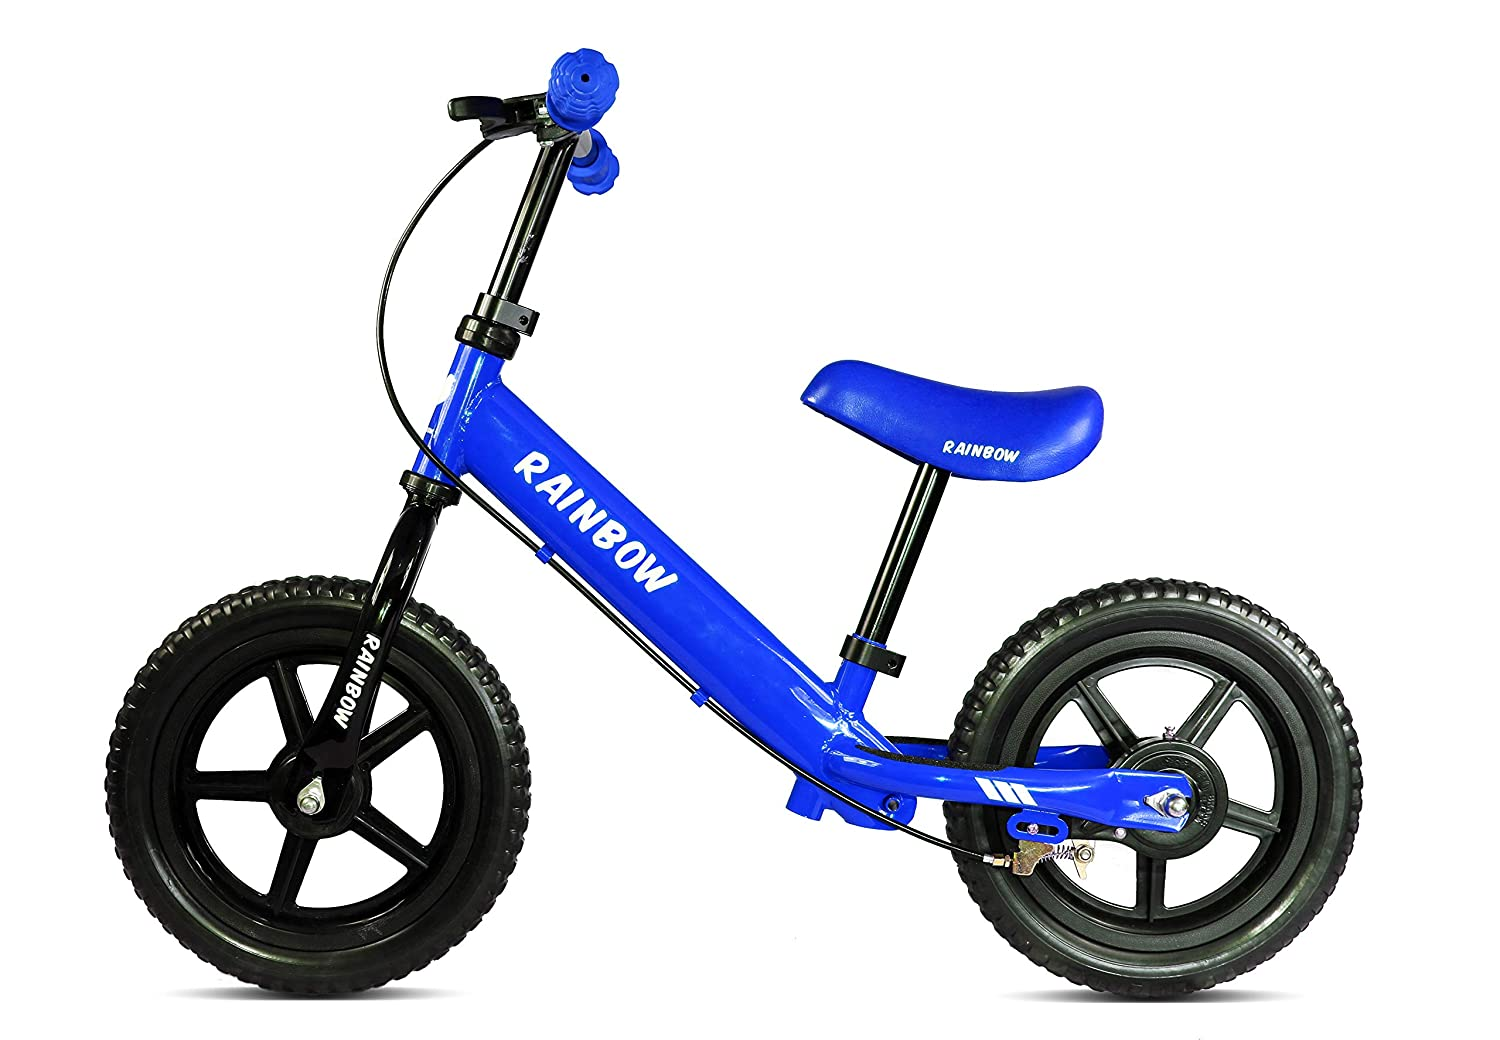 """Rainbow Balance Bike for Kids 12"""" Wheels No-Pedals Bike for Boys & Girls 2-5 Years Old, Children Learn How to Balance Them self on a Bike Safely with Brakes"""